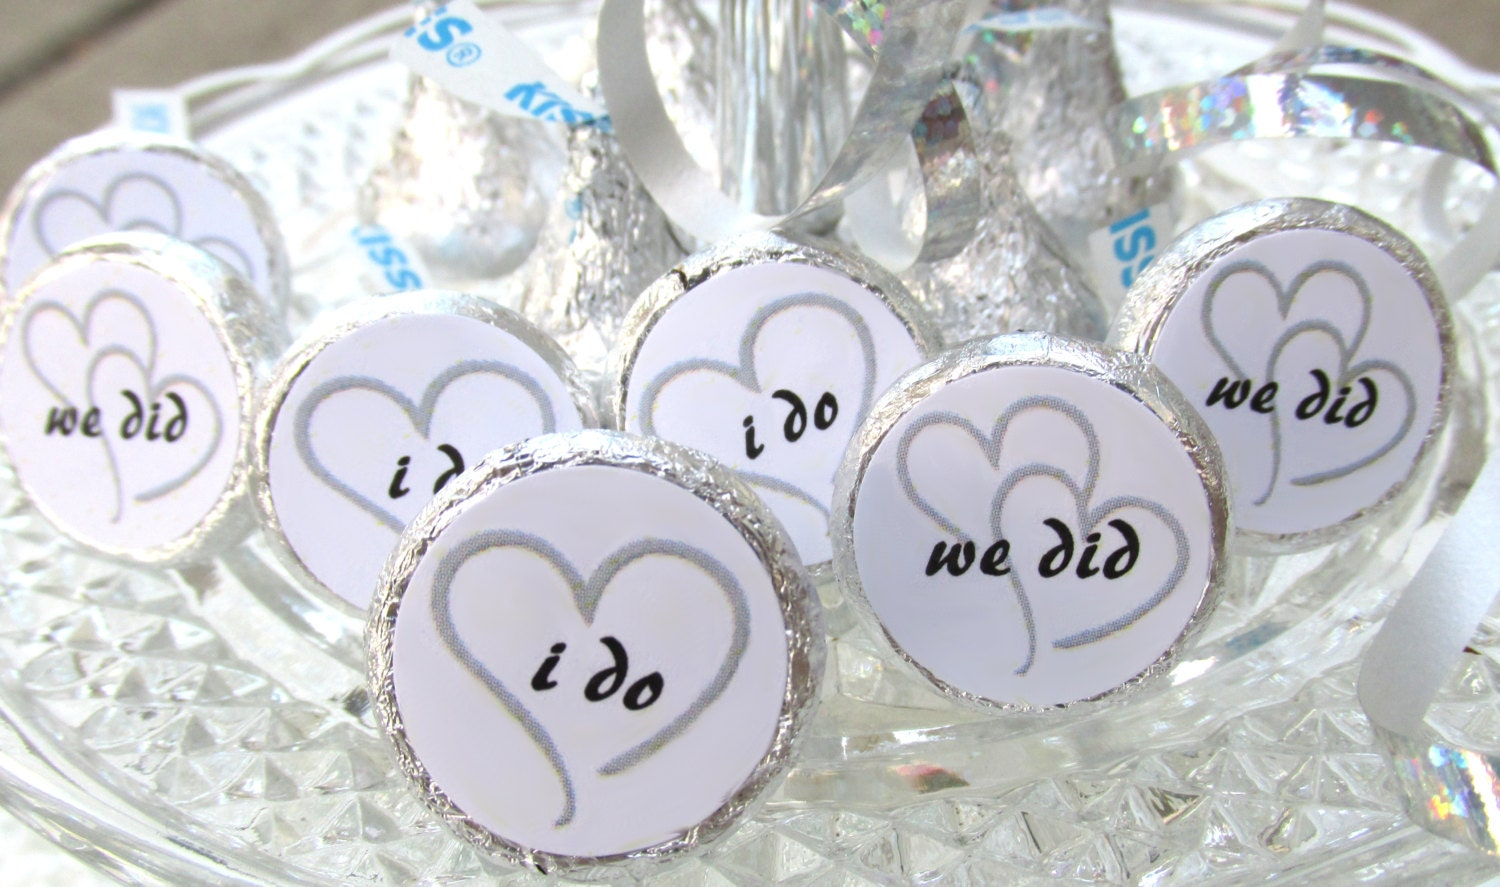 Wedding Favors Candy Stickers Fits Hershey Kisses Black And. Wedding Pictures Effects In Photoshop. Wedding Photos Locations Sri Lanka. Wedding Florists Charlottesville Va. Wedding Invitation Message Whatsapp. Best Wedding Sites.com. Wedding Coordinator Zamboanga. Wedding Show Kempton Park. The Wedding Planner Movie Quiz